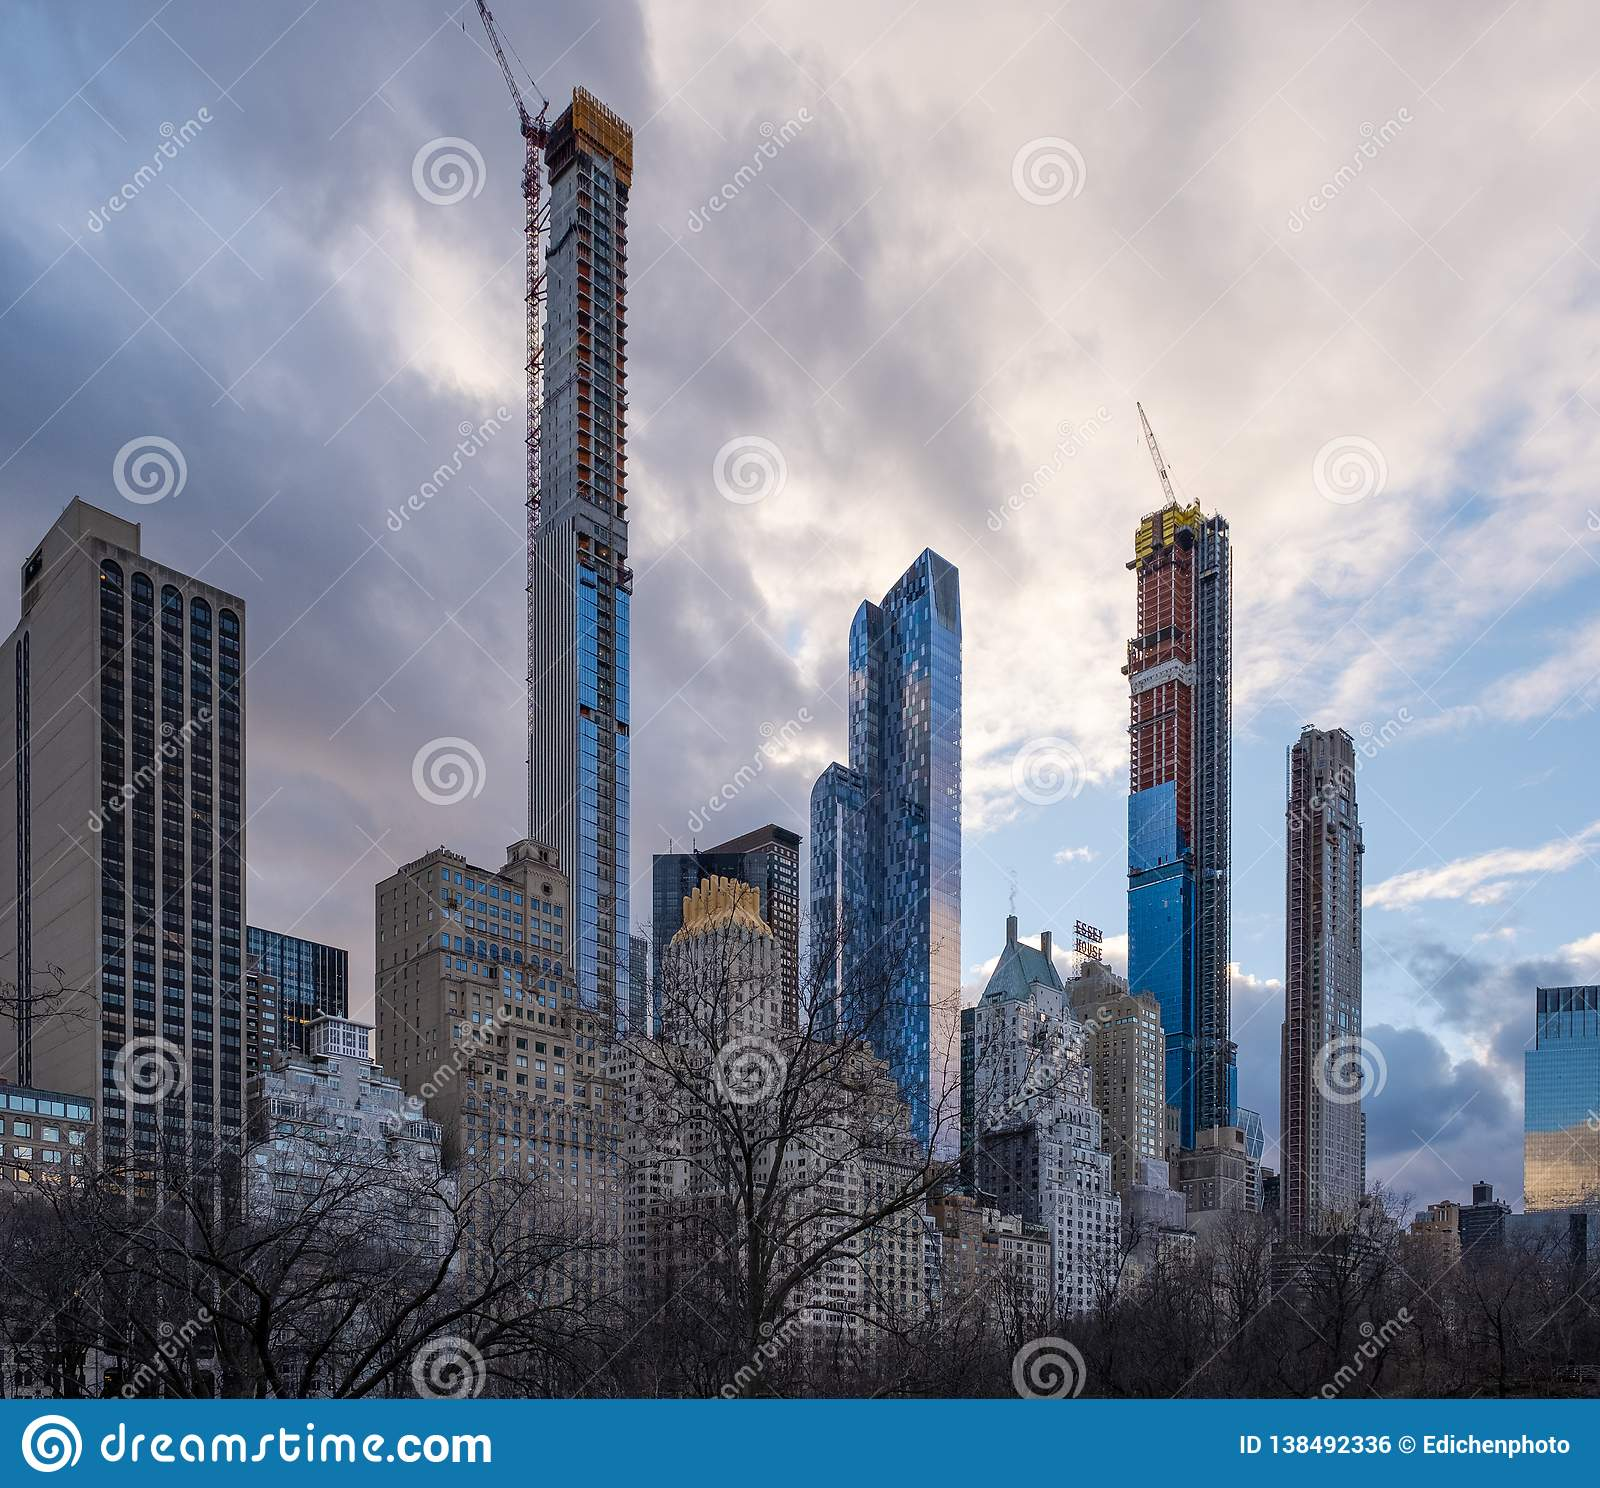 Central Park Apartments New York: Cityscape Of Apartment And Office Buildings View From